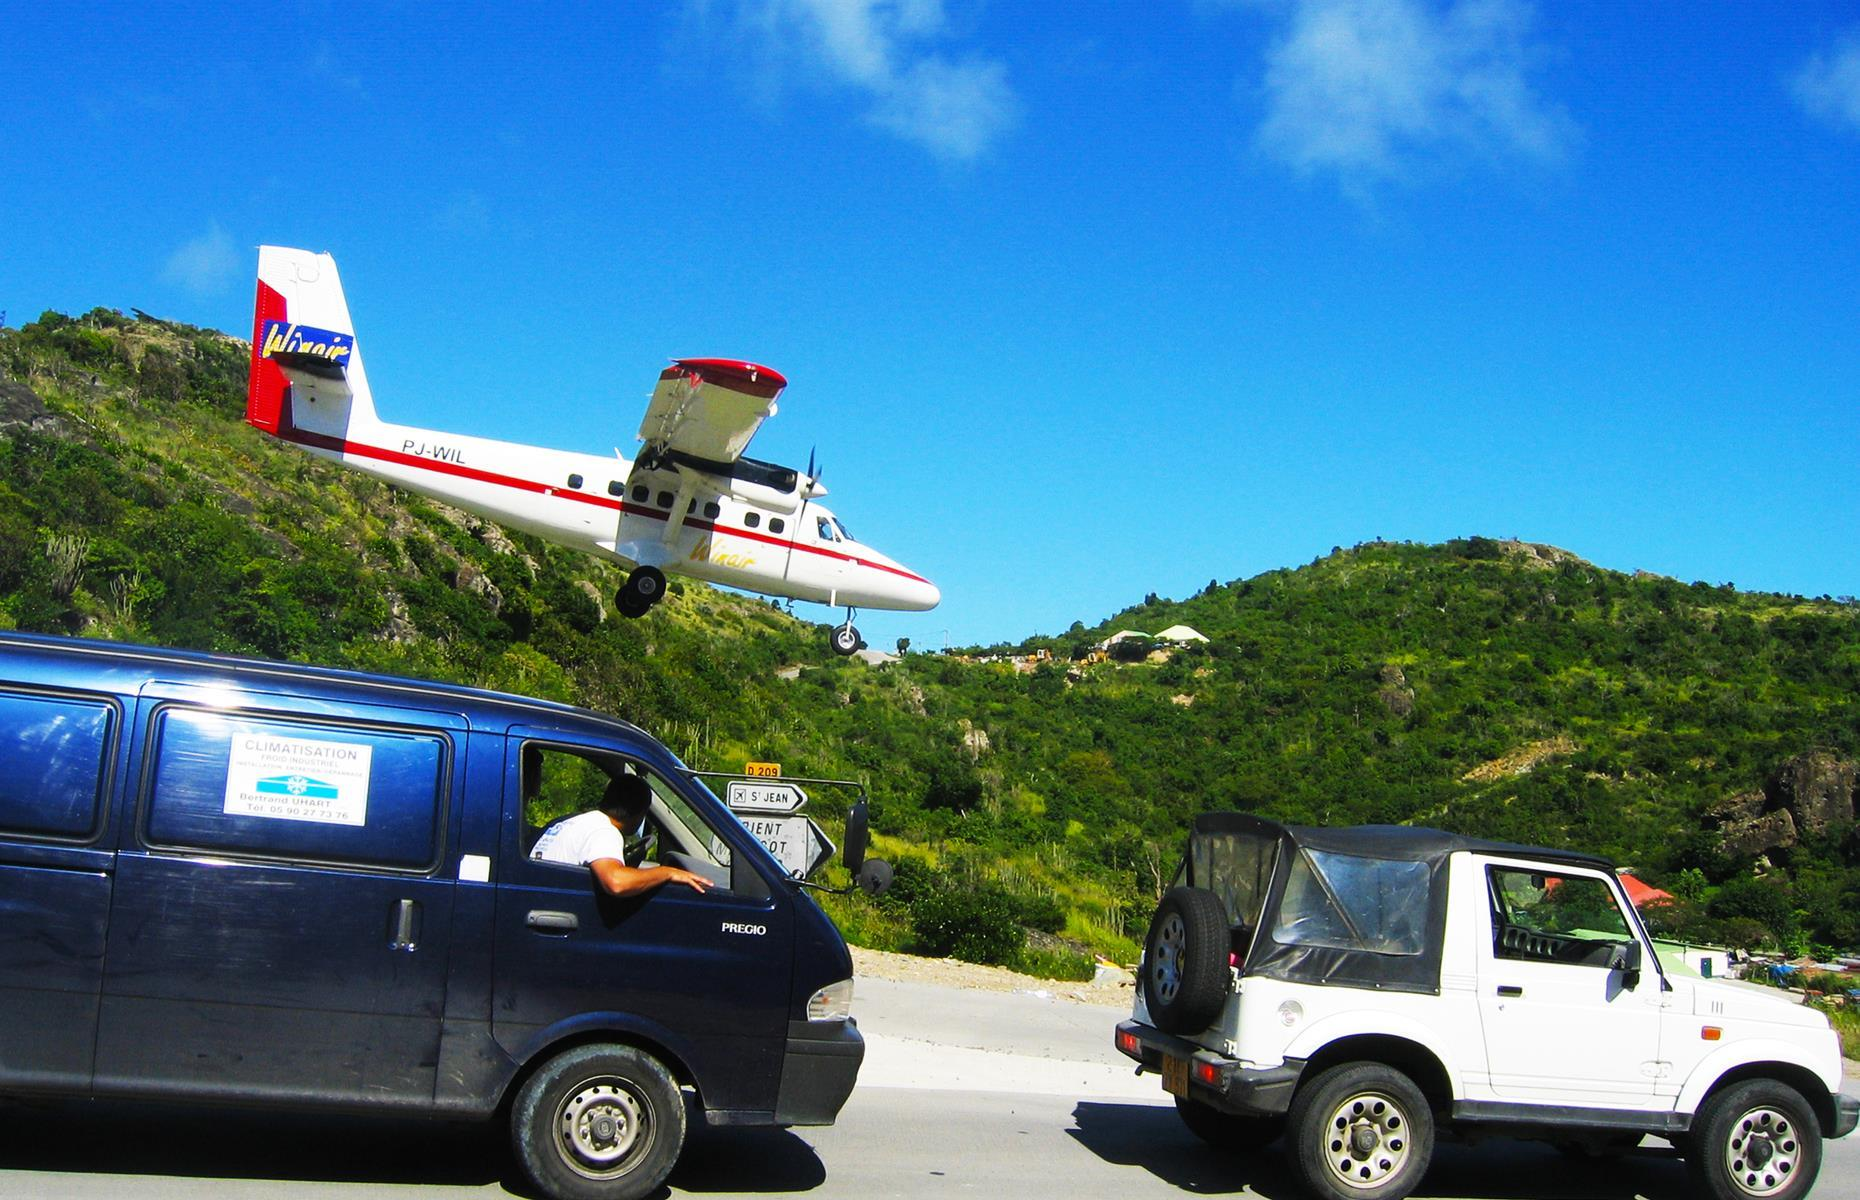 Slide 30 of 44: Only light aircraft carrying up to 20 passengers can land at Gustaf III airport (also known as Saint Barthélemy Airport) on the gorgeous Caribbean island of St Barts, and for good reason. The perilous approach involves swooping down a steep hill, just feet away from traffic and vegetation, before touching down onto a tiny 2,132-foot (650m) runway.